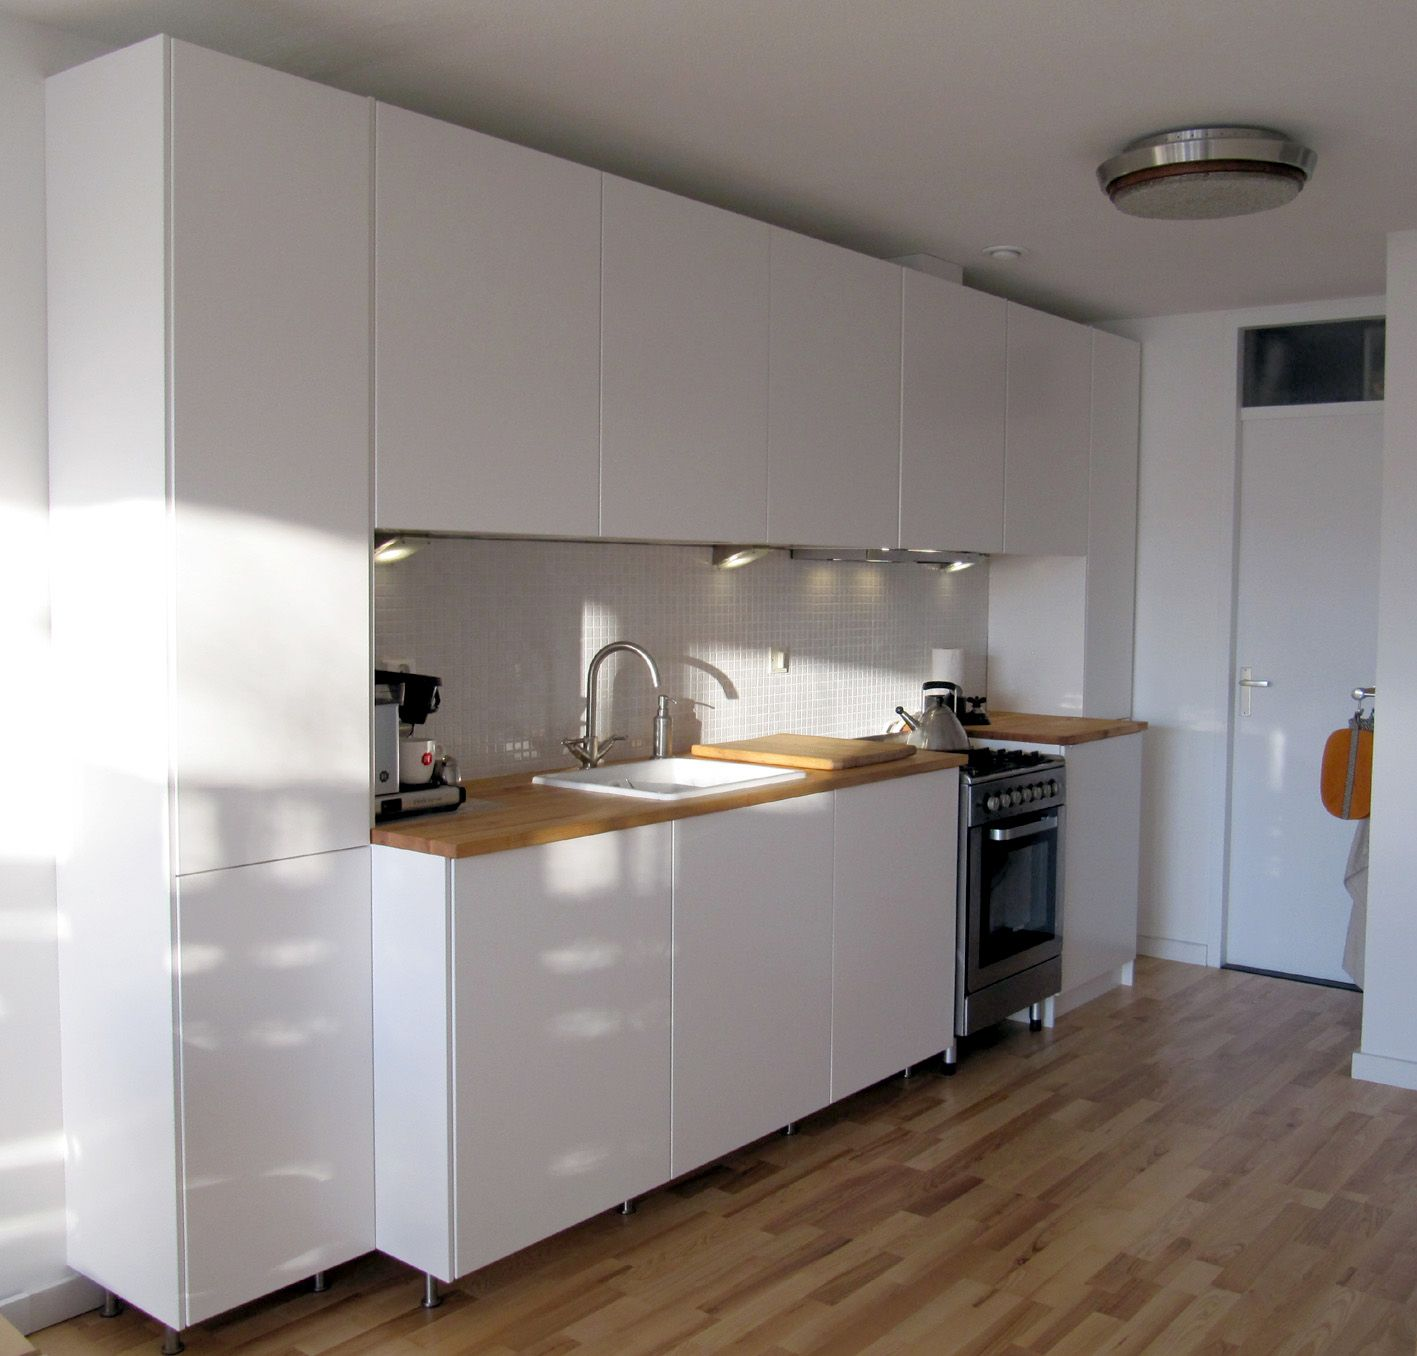 Veddinge Küche Kitchen Is Finished No Birch Plywood Doors But Ikea